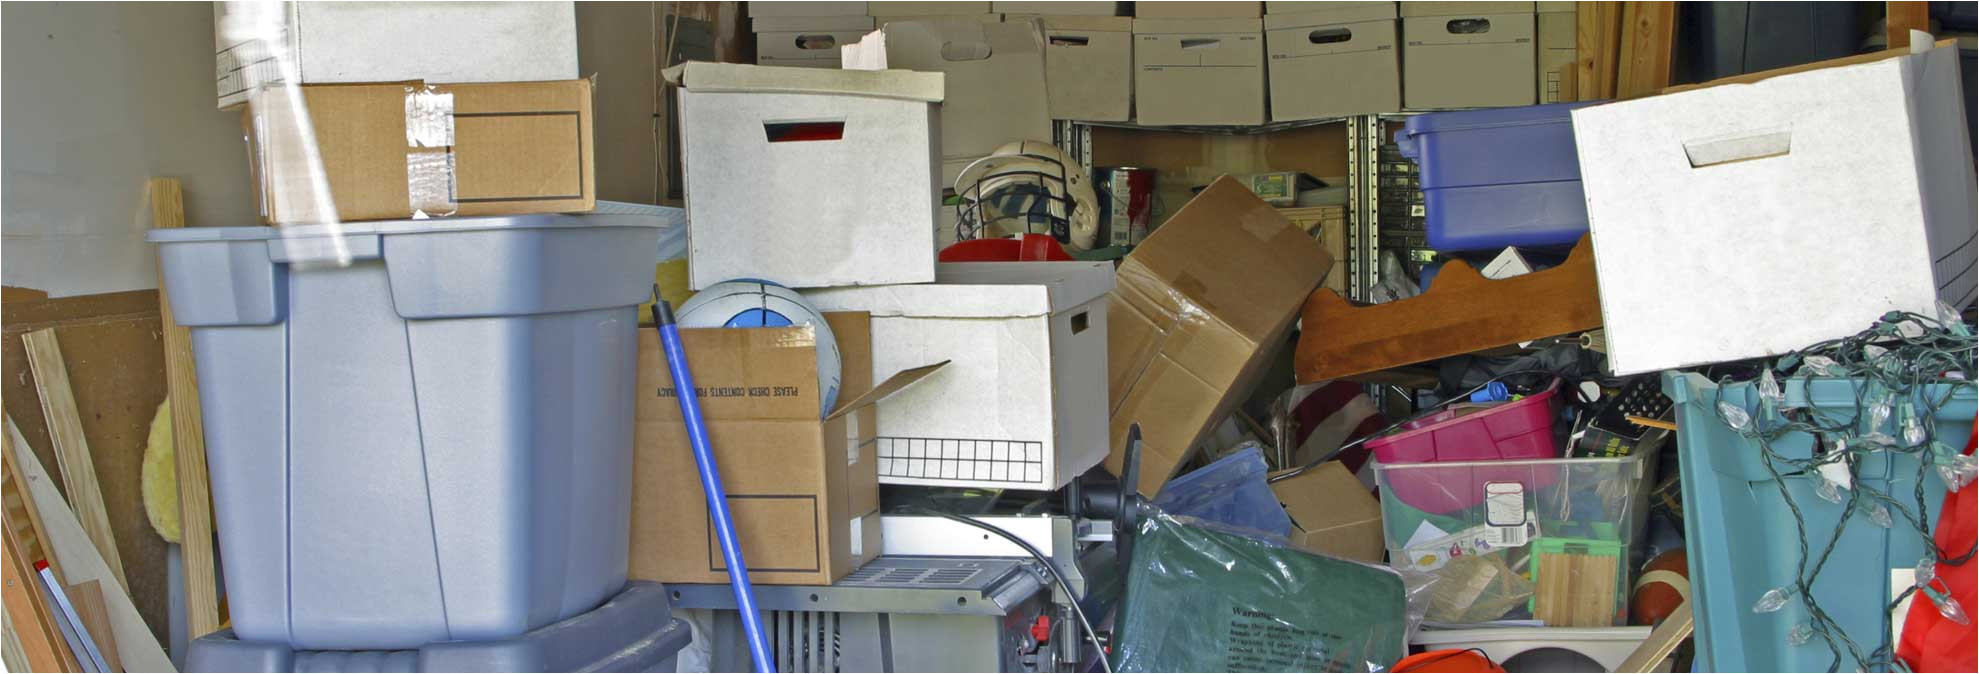 cr home hero how to get rid of anything 05 16